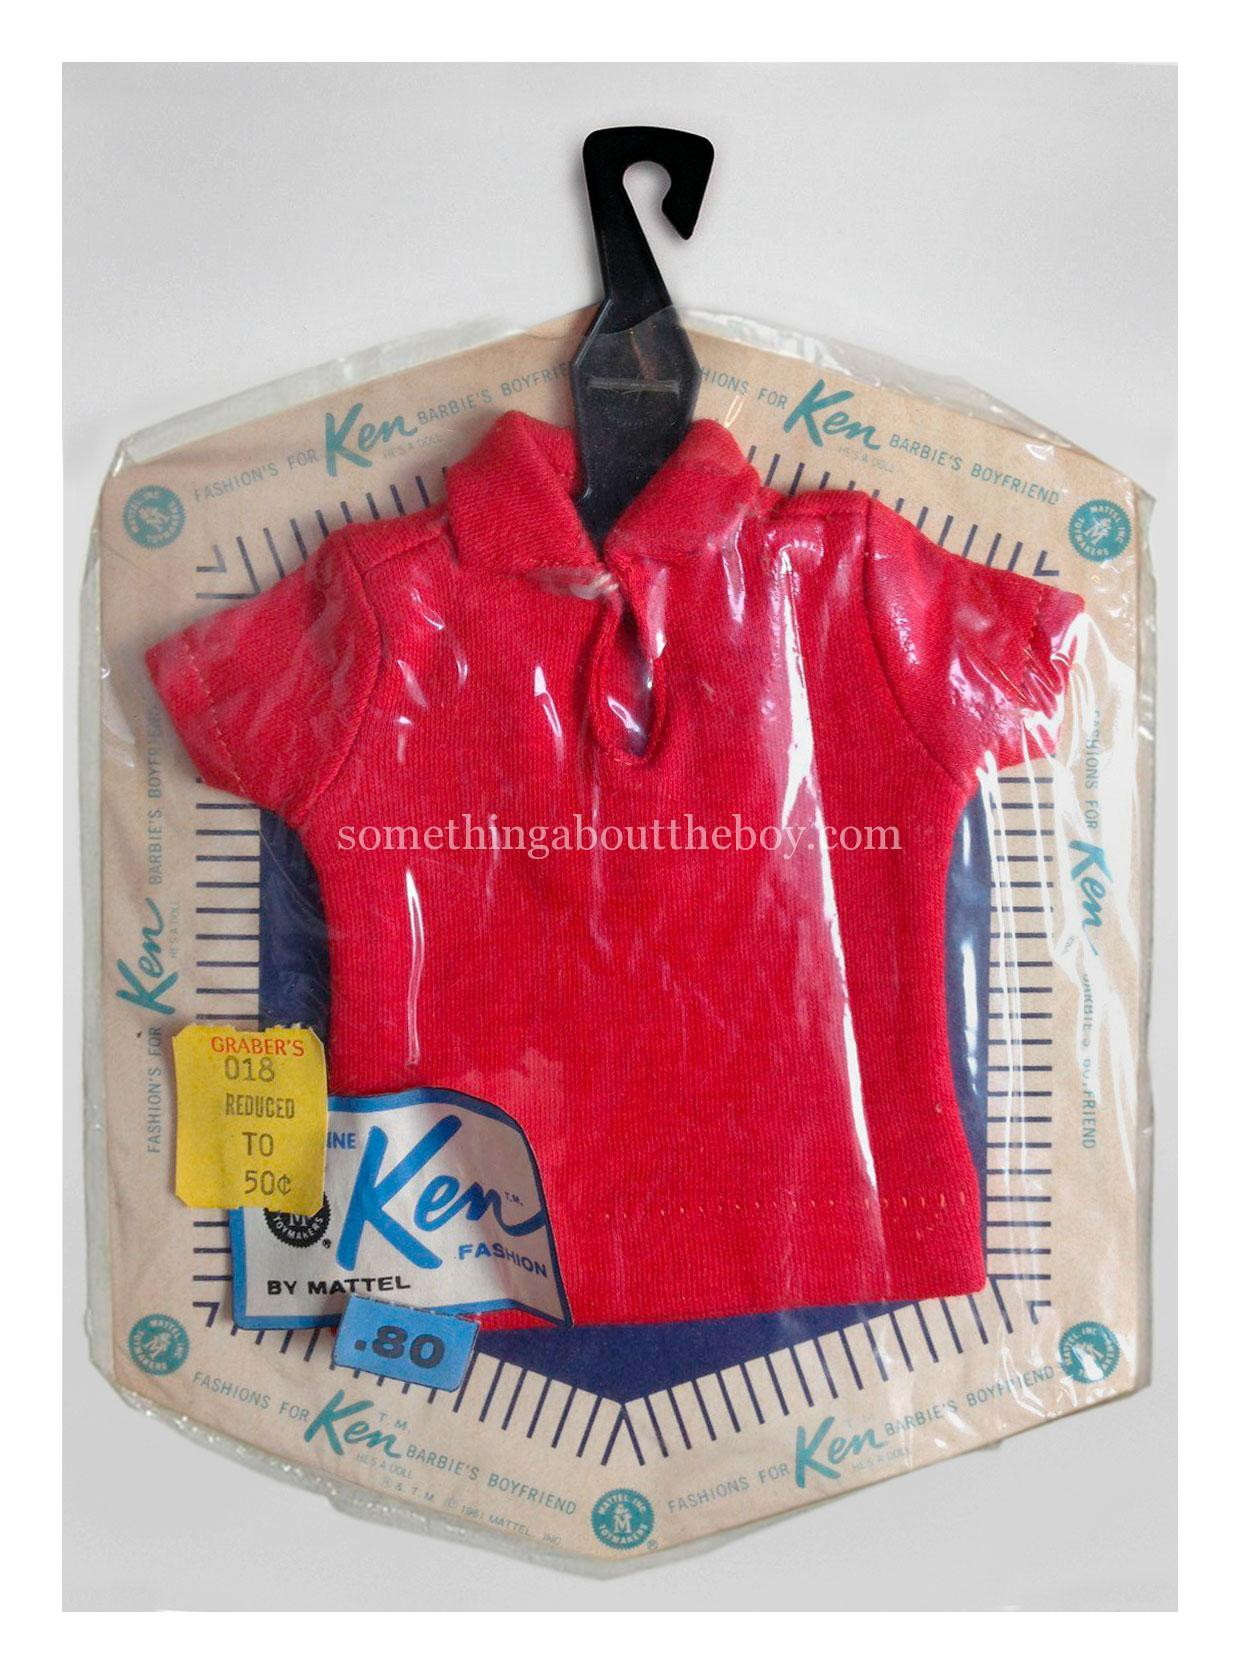 1962 Polo Shirt in original packaging